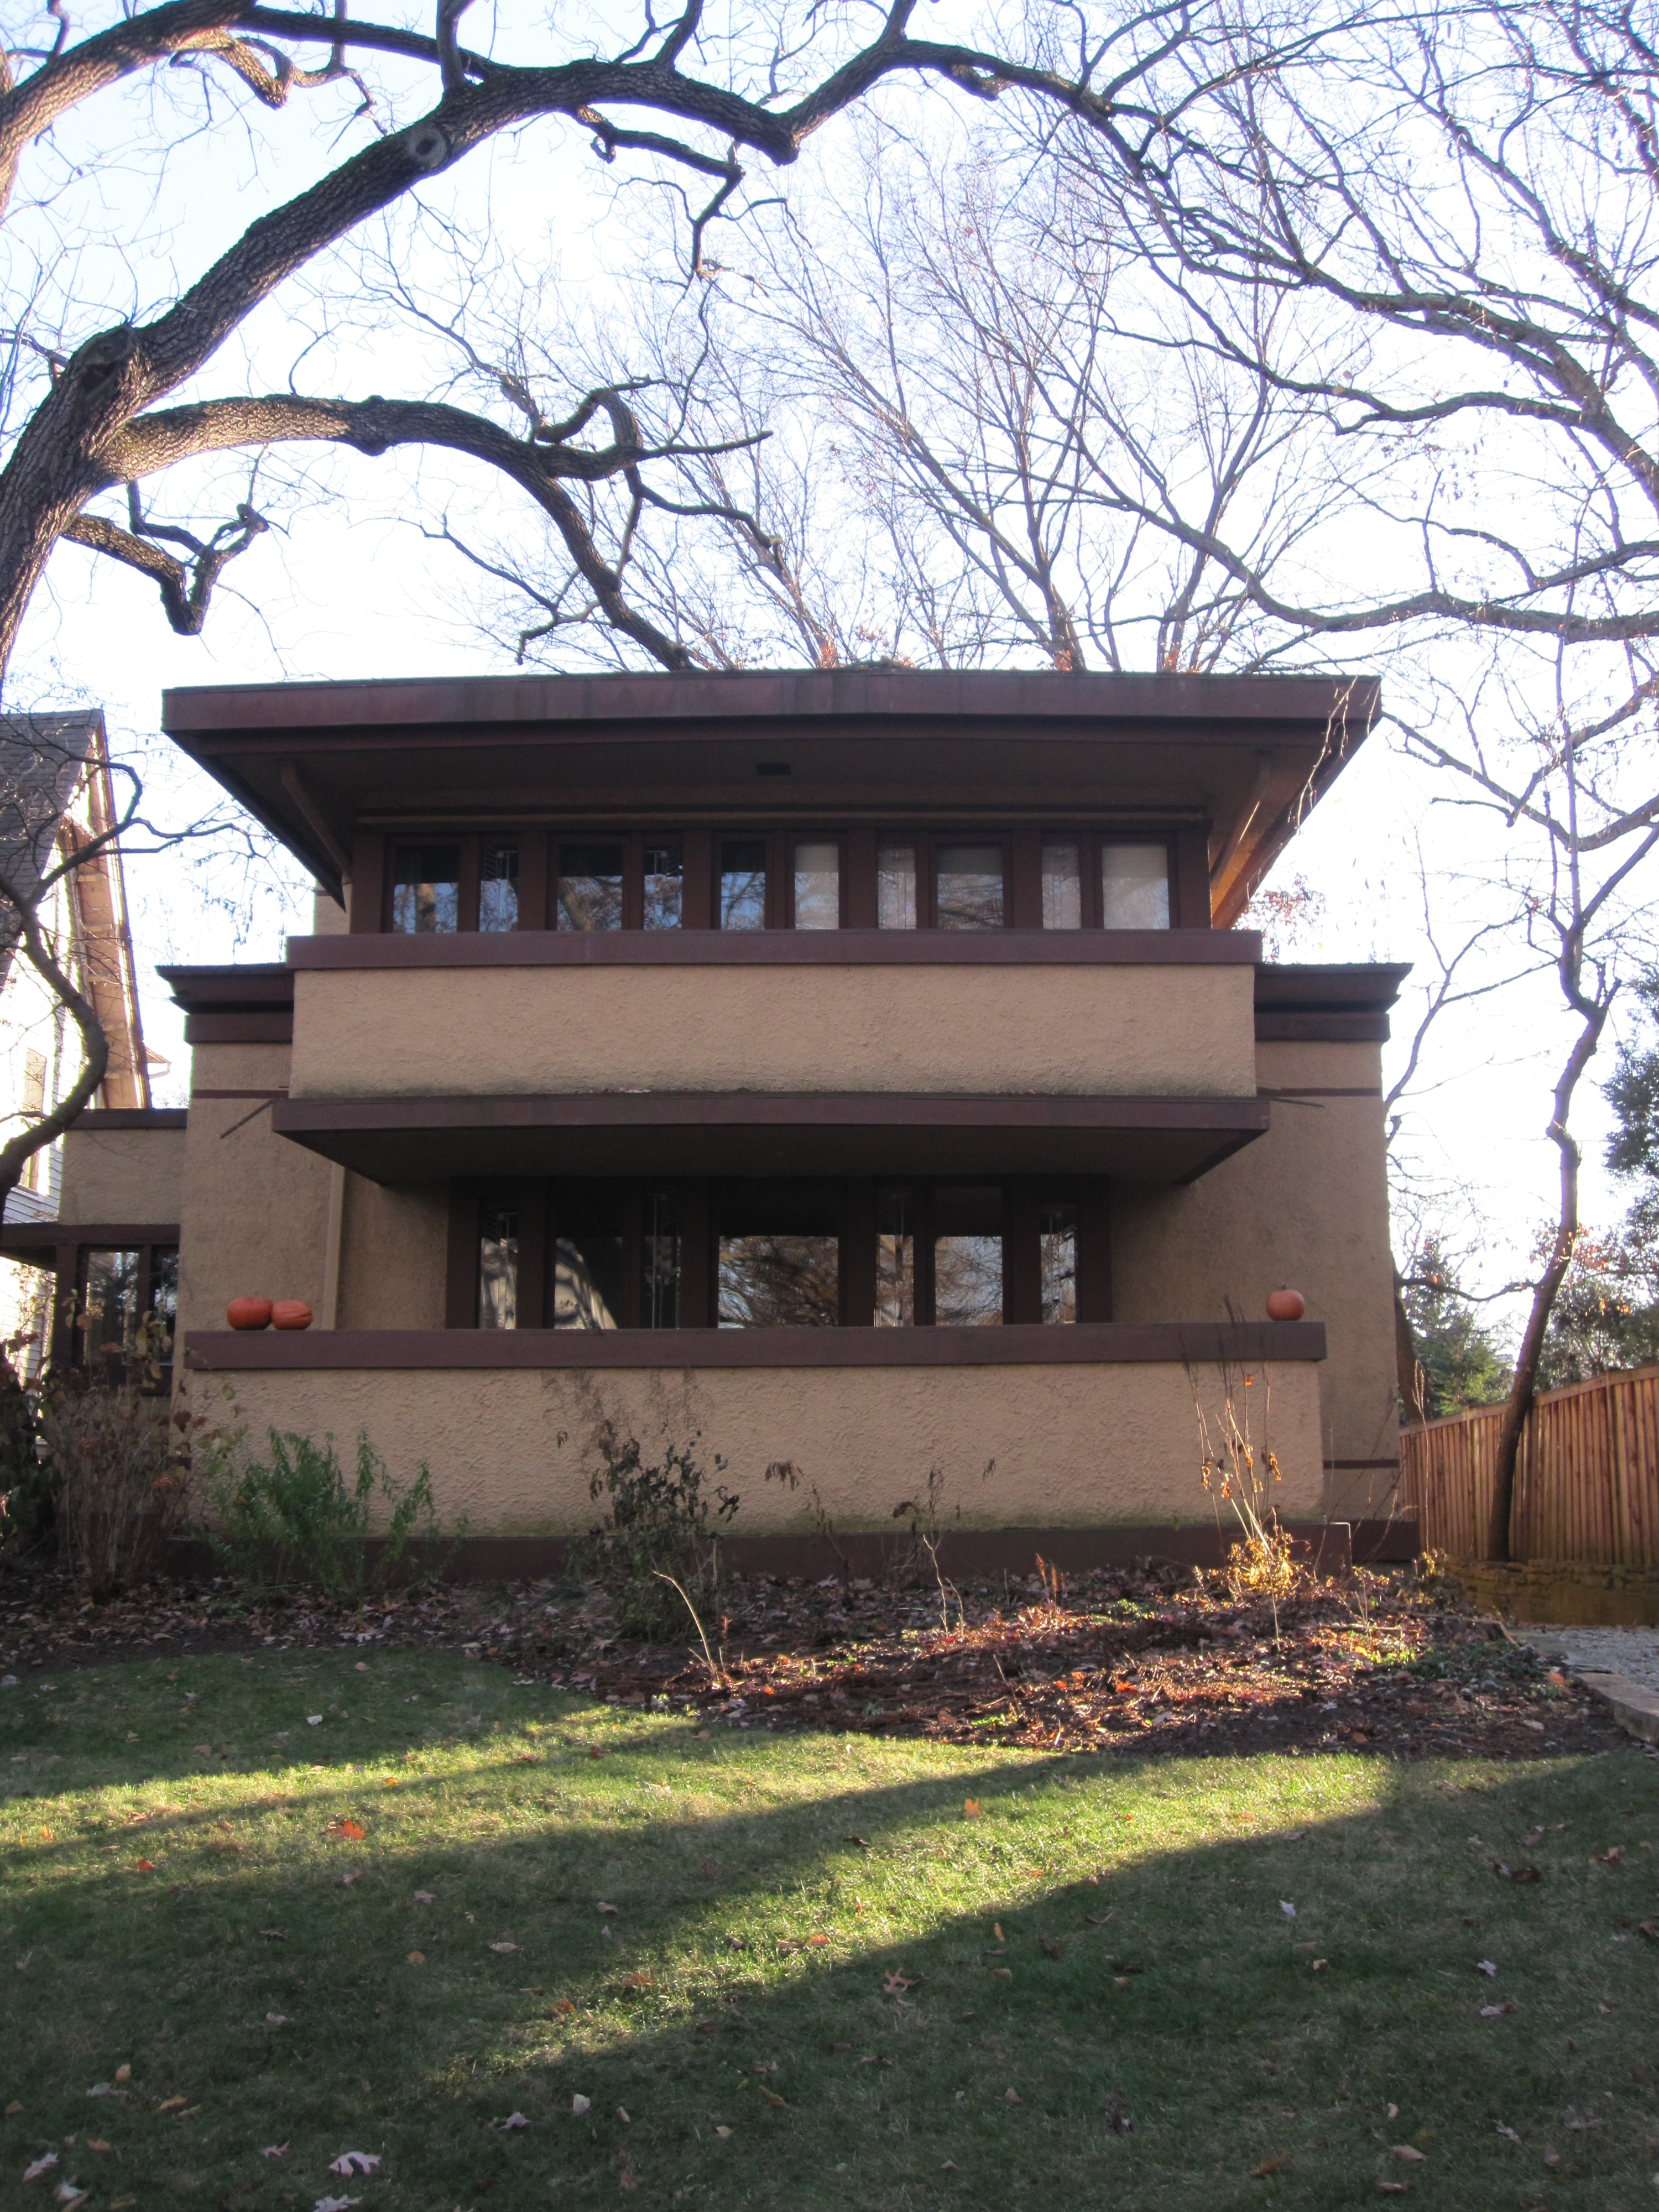 19_CHICAGO_ARCHITECTURE_FRANK_LLOYD_WRIGHT_OAK_PARK